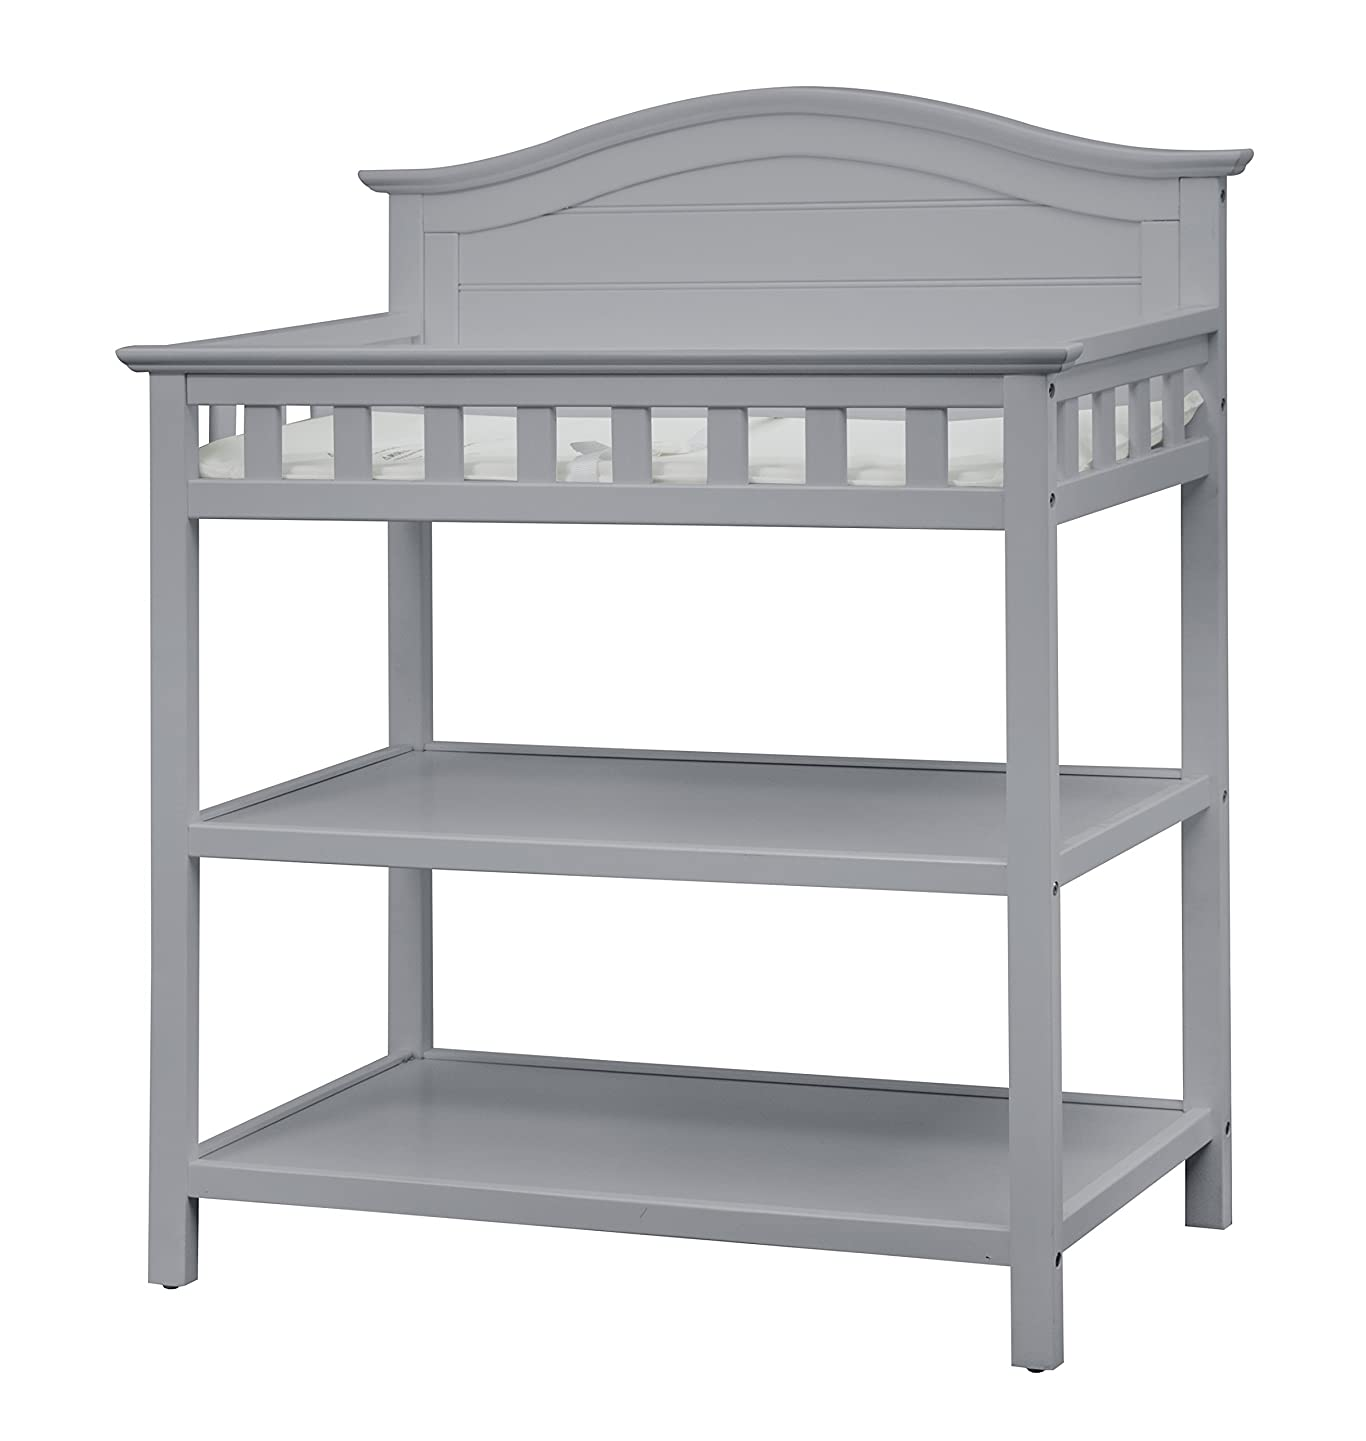 Thomasville Kids Southern Dunes Changing Table, Pebble Gray, Changing Table with Water Resistant Changing Pad, Safety Strap & Two Storage Shelves, for Infants & Toddlers klnucoursokf